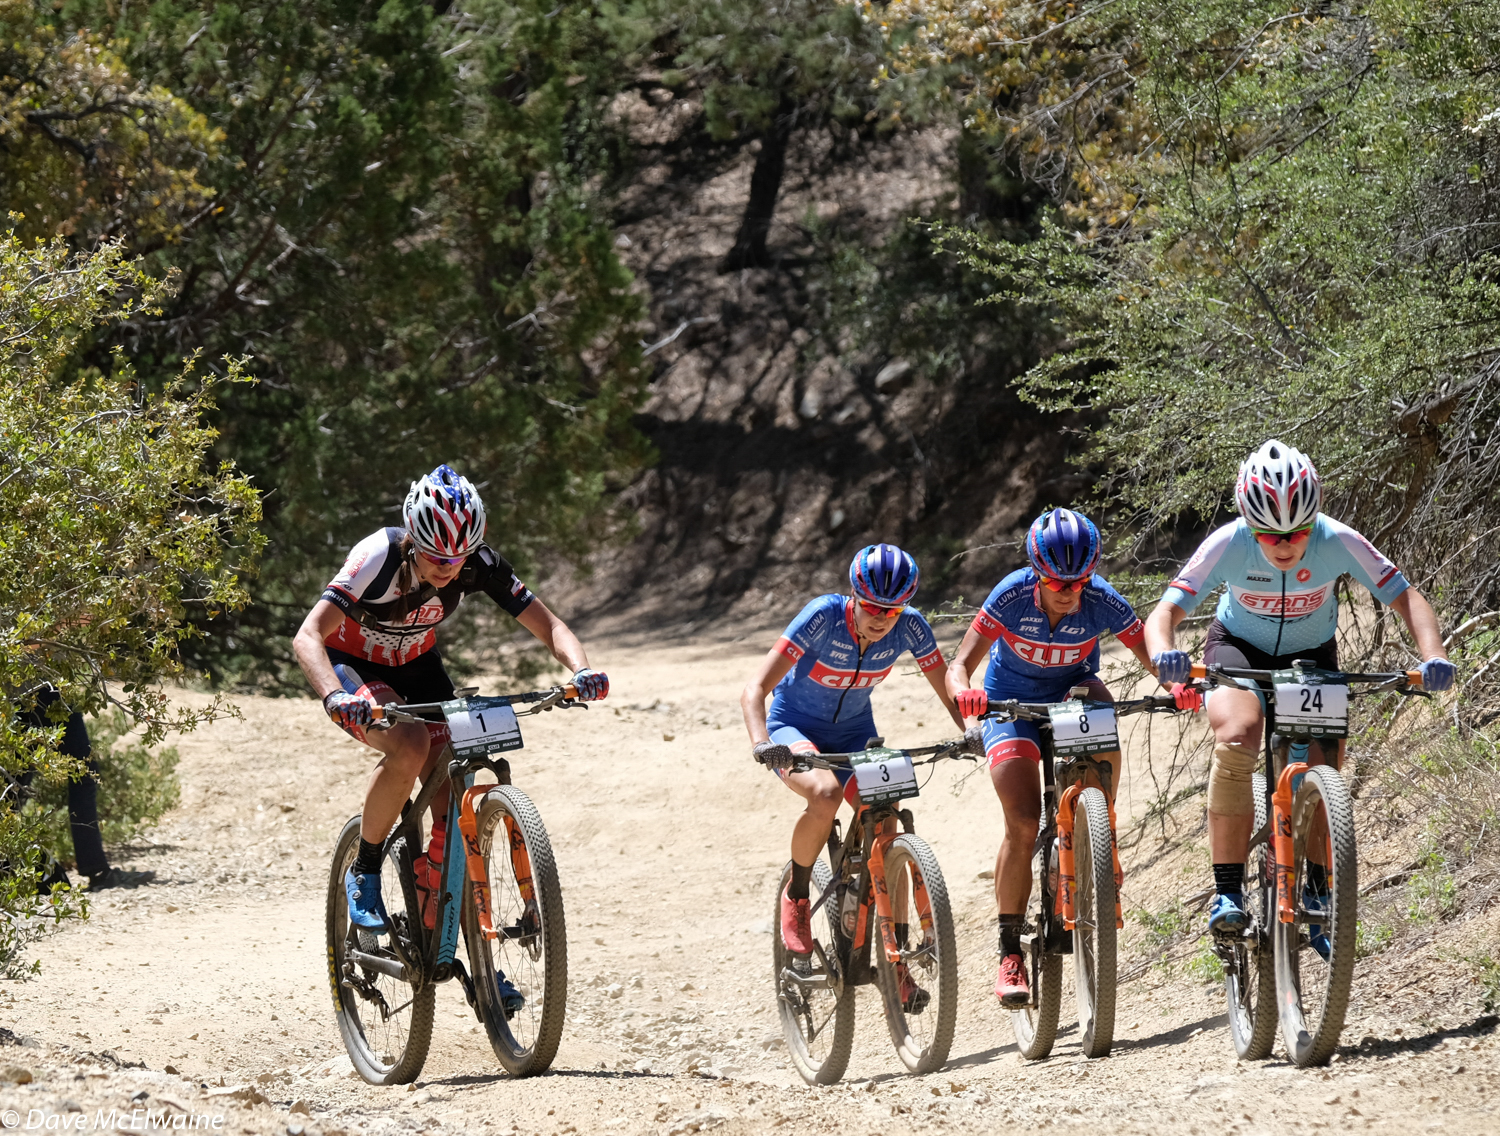 About 45 min in, Kate and Erin accelerated. I tried to follow, but I couldn't do it. They rode away from everyone and it created a separation in the group. Chloe, Rose, Katerina and I formed a group and rode together for the majority of the race. Photo by Dave McElwaine.